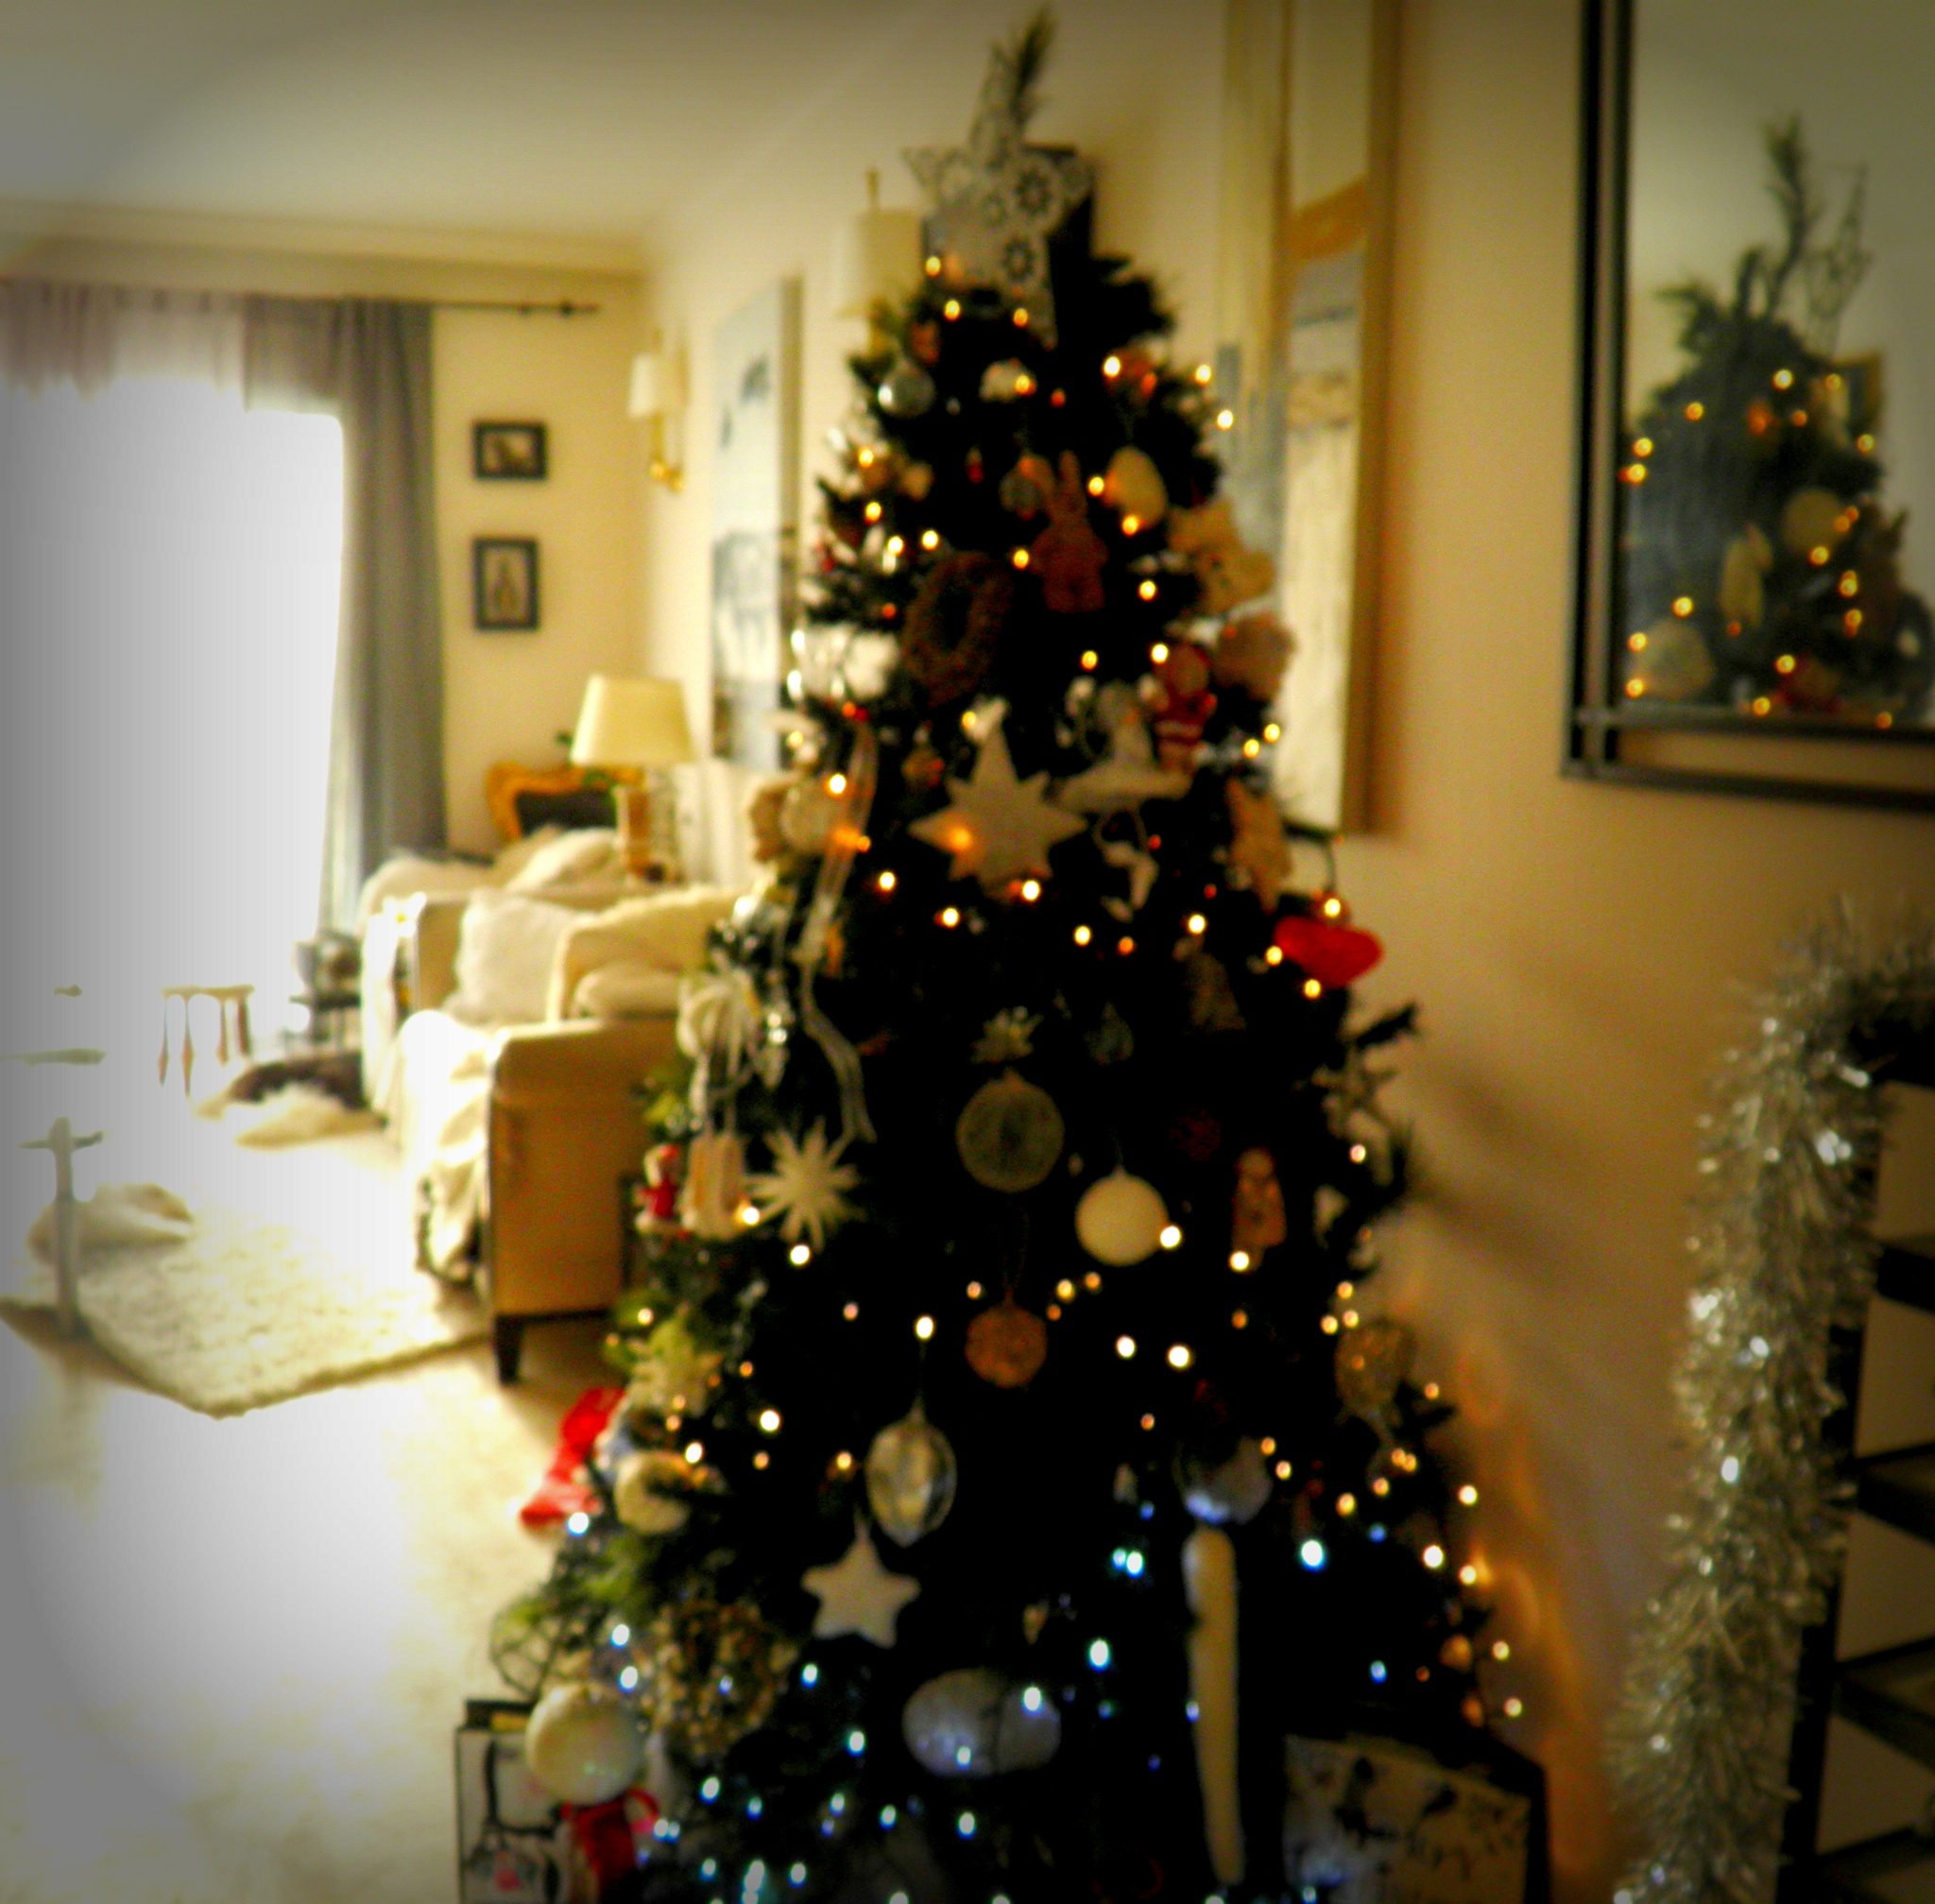 The Christmas tree at home with Frankie and Fudge in the background xxx by karenanne.borsani